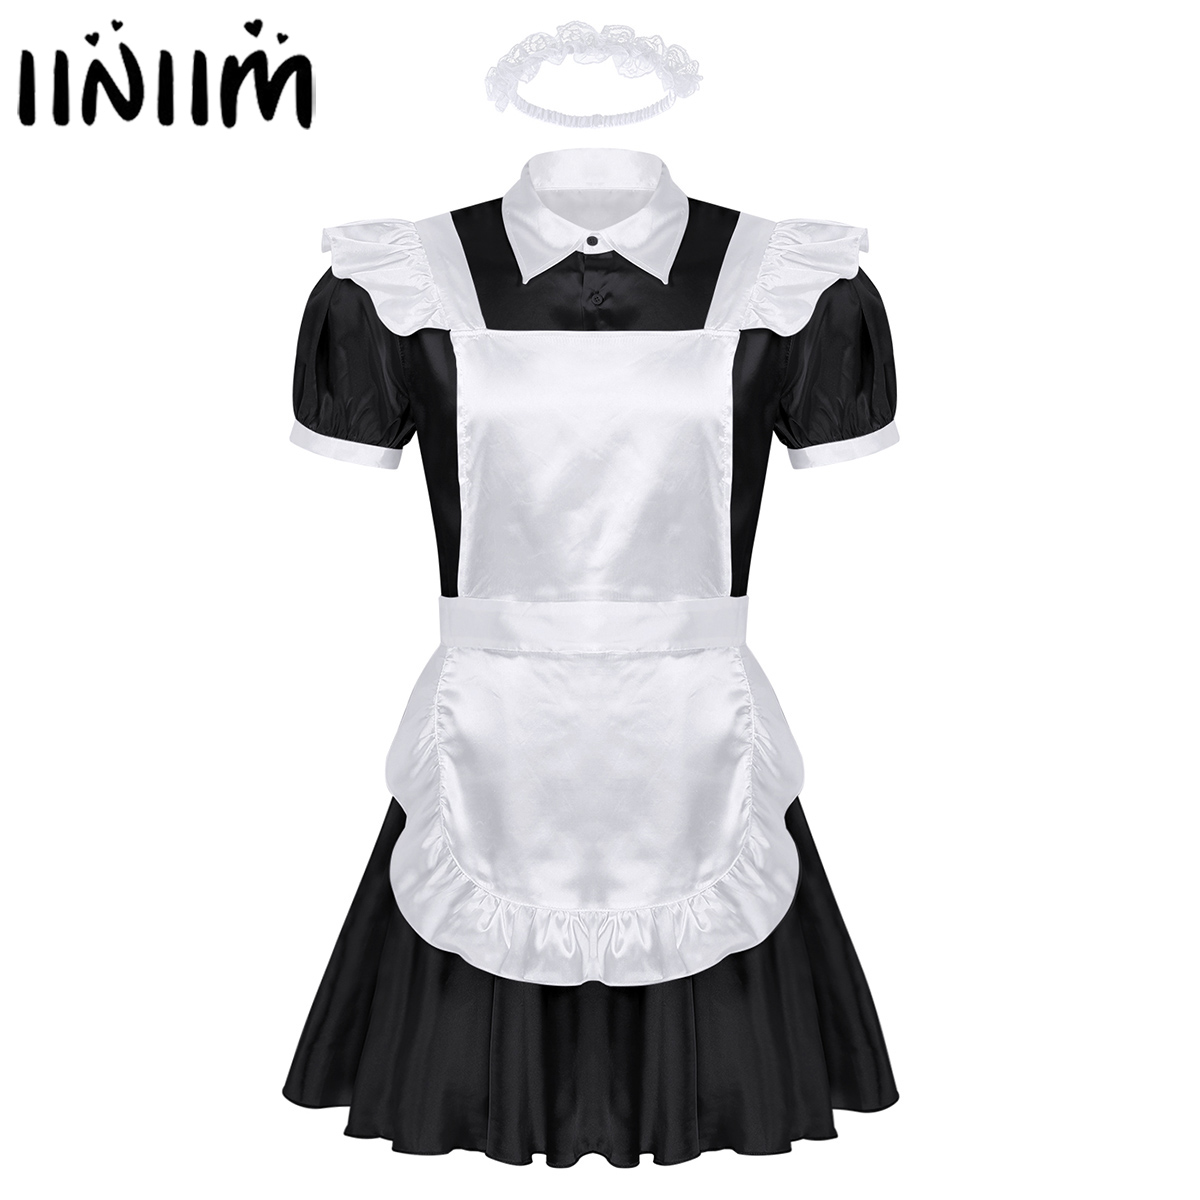 Men <font><b>Sexy</b></font> Sissy Maids Cosplay Uniform Outfit French Apron Maid Servant Mini Babydoll <font><b>Dress</b></font> <font><b>Halloween</b></font> Porno Roleplay Costume Homme image